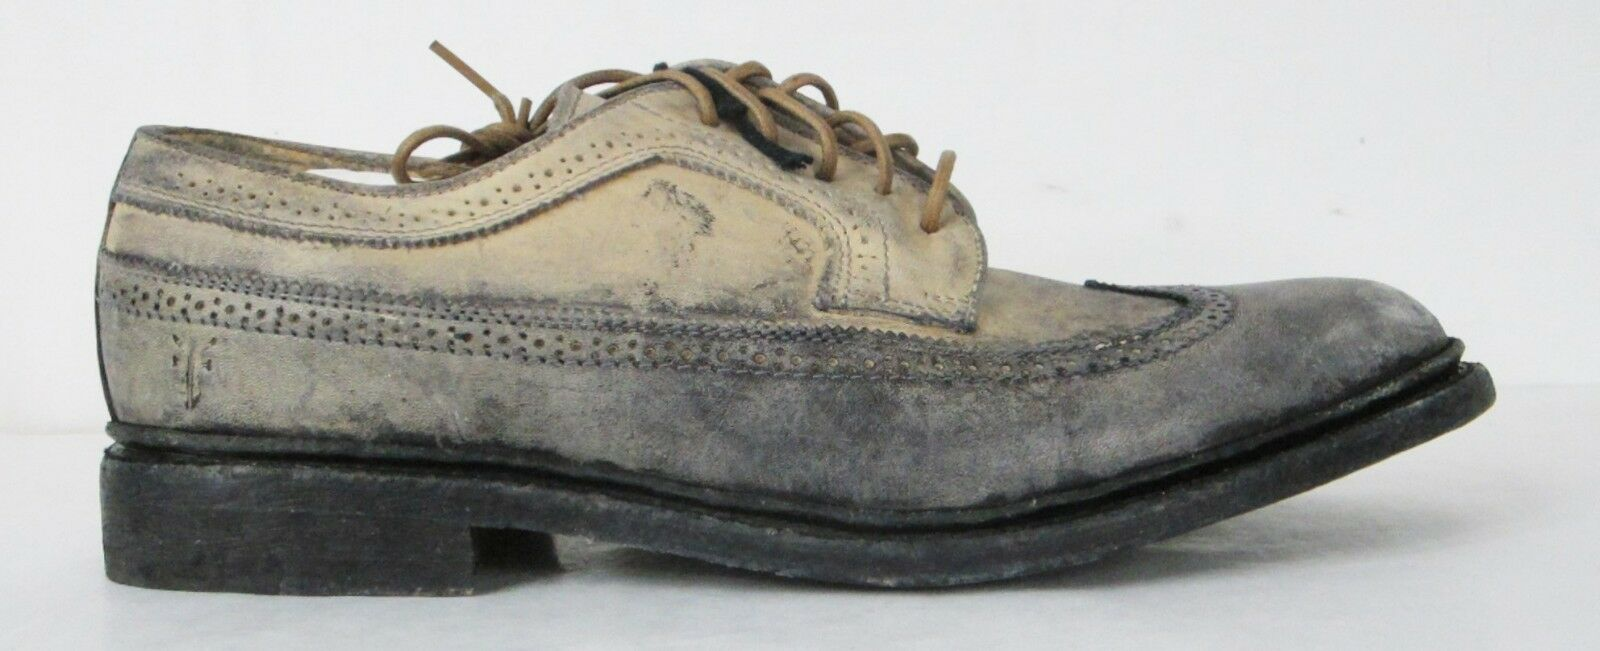 FRYE SHOES James Wingtip Stone Distressed Distressed Distressed Leather 84627 SZ 13  348 418335